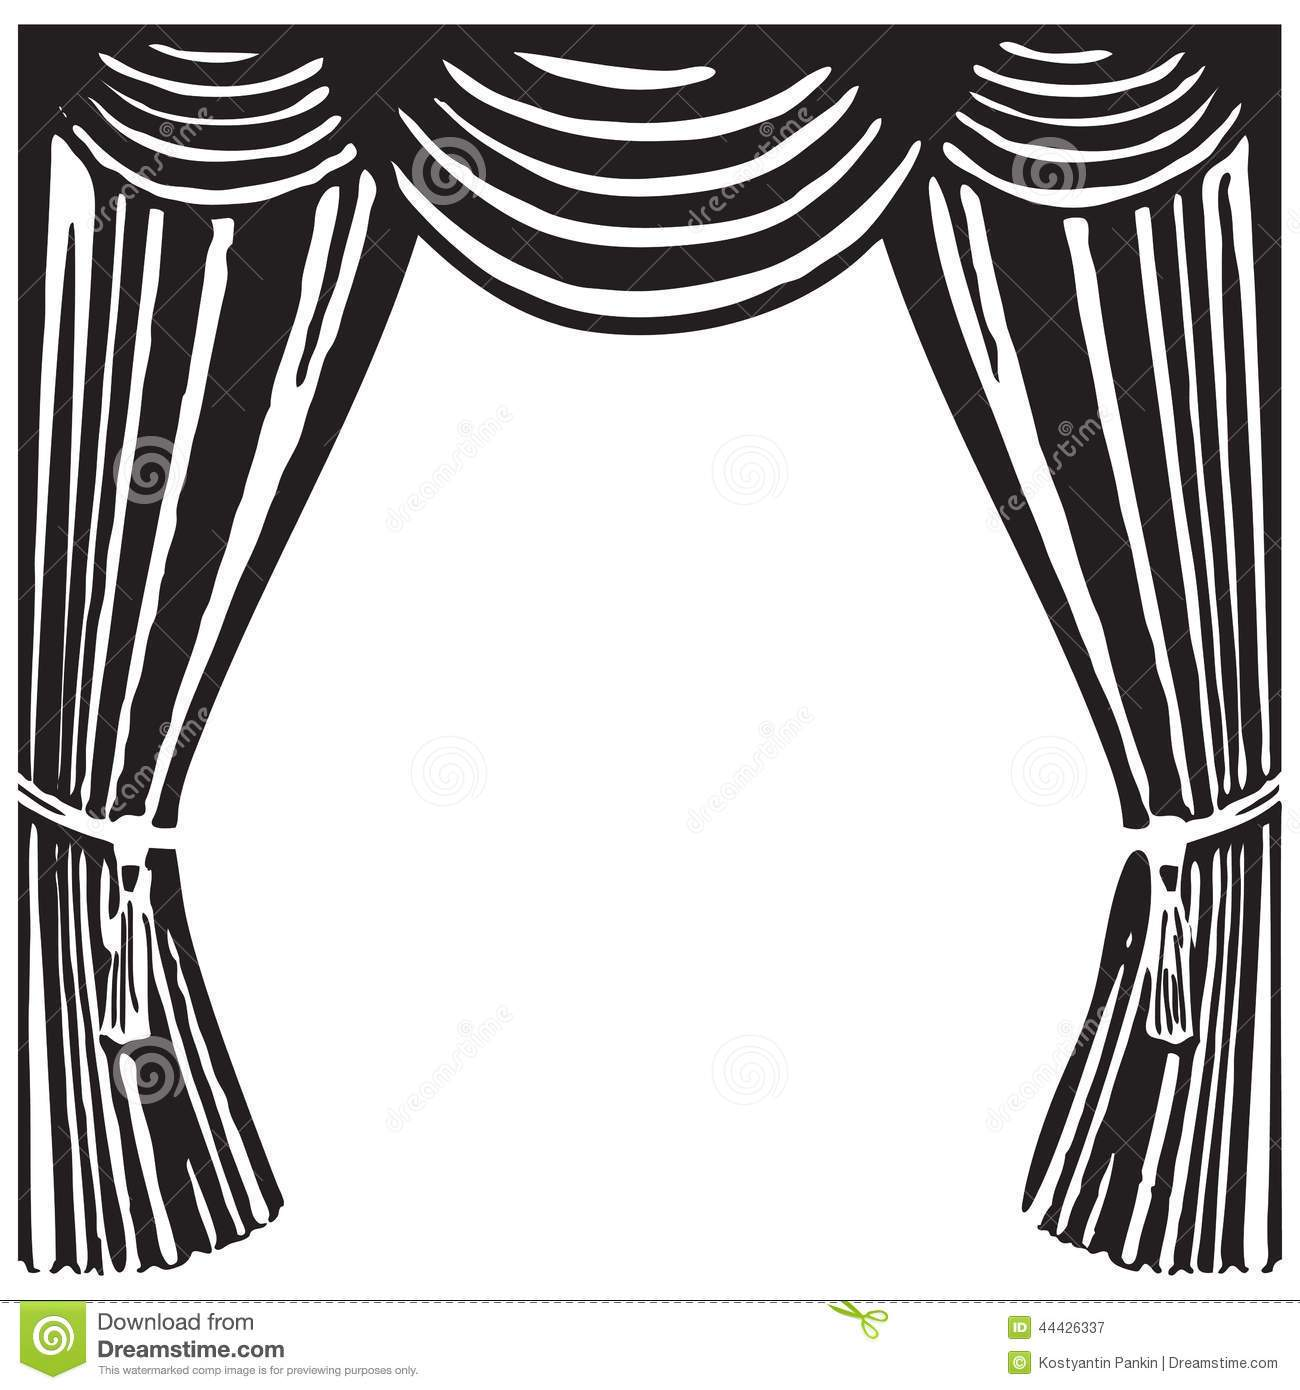 Stage clipart black and white 4 » Clipart Portal.